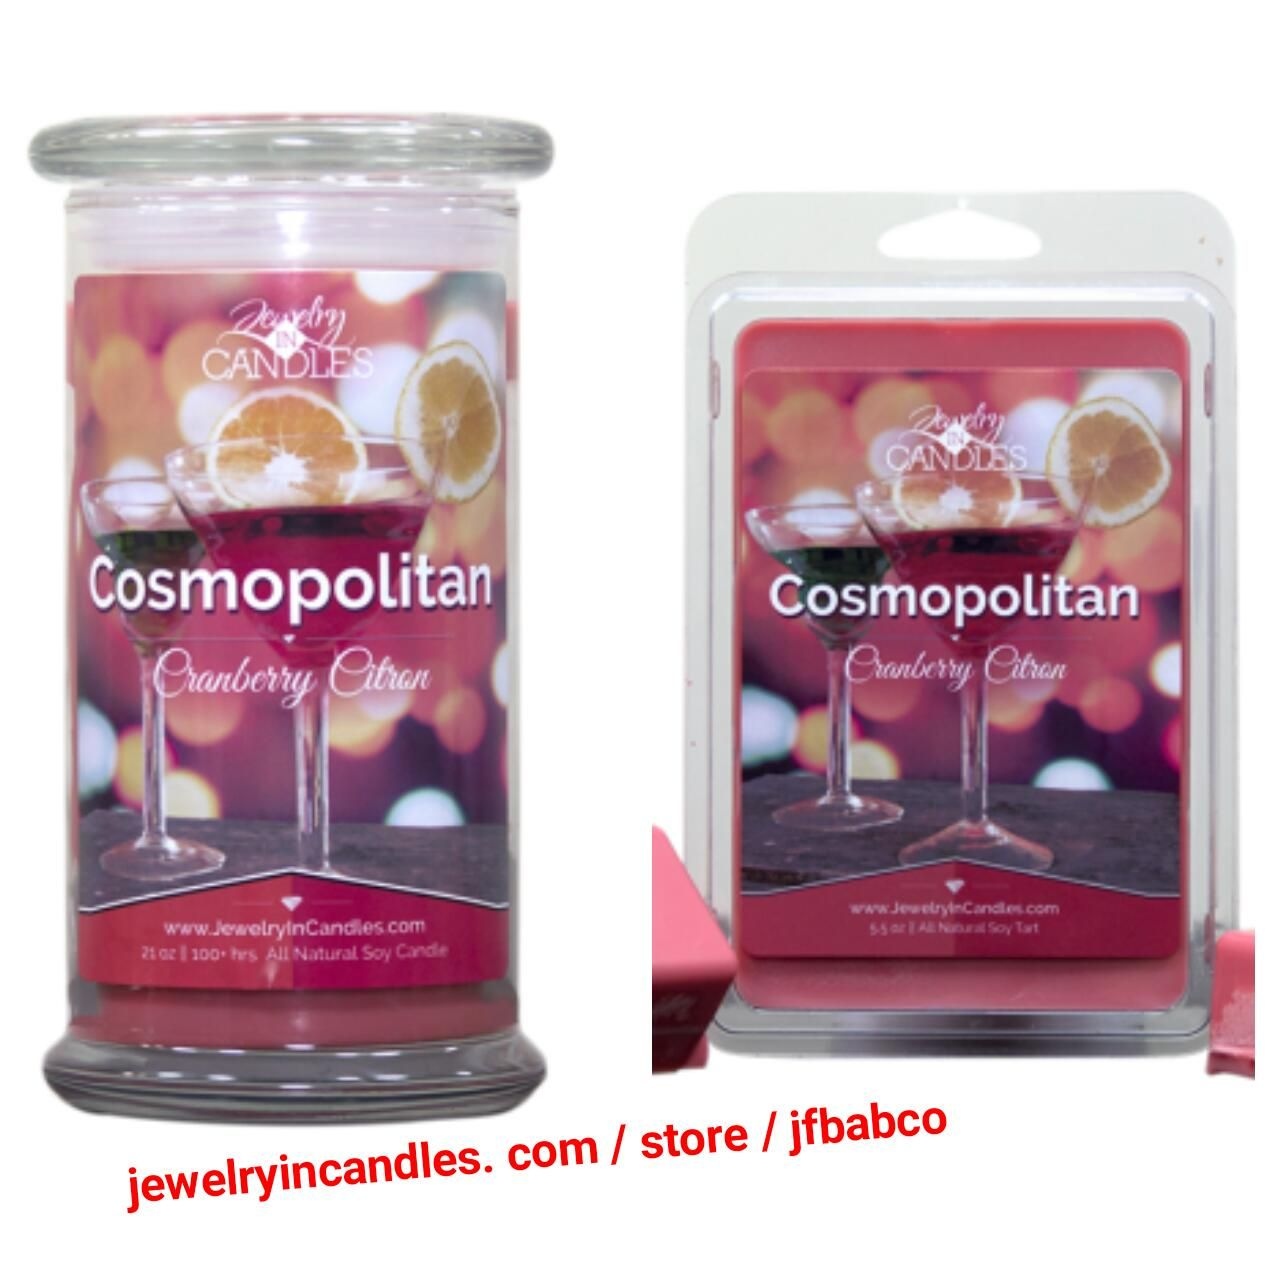 #ScentOfTheDay: A dear friend can't stop talking about #Cosmopolitan: #CranberryCitron. It combines lemon, pineapple & cranberries. She says orange is in there also. https://jewelryincandles.com/store/jfbabco